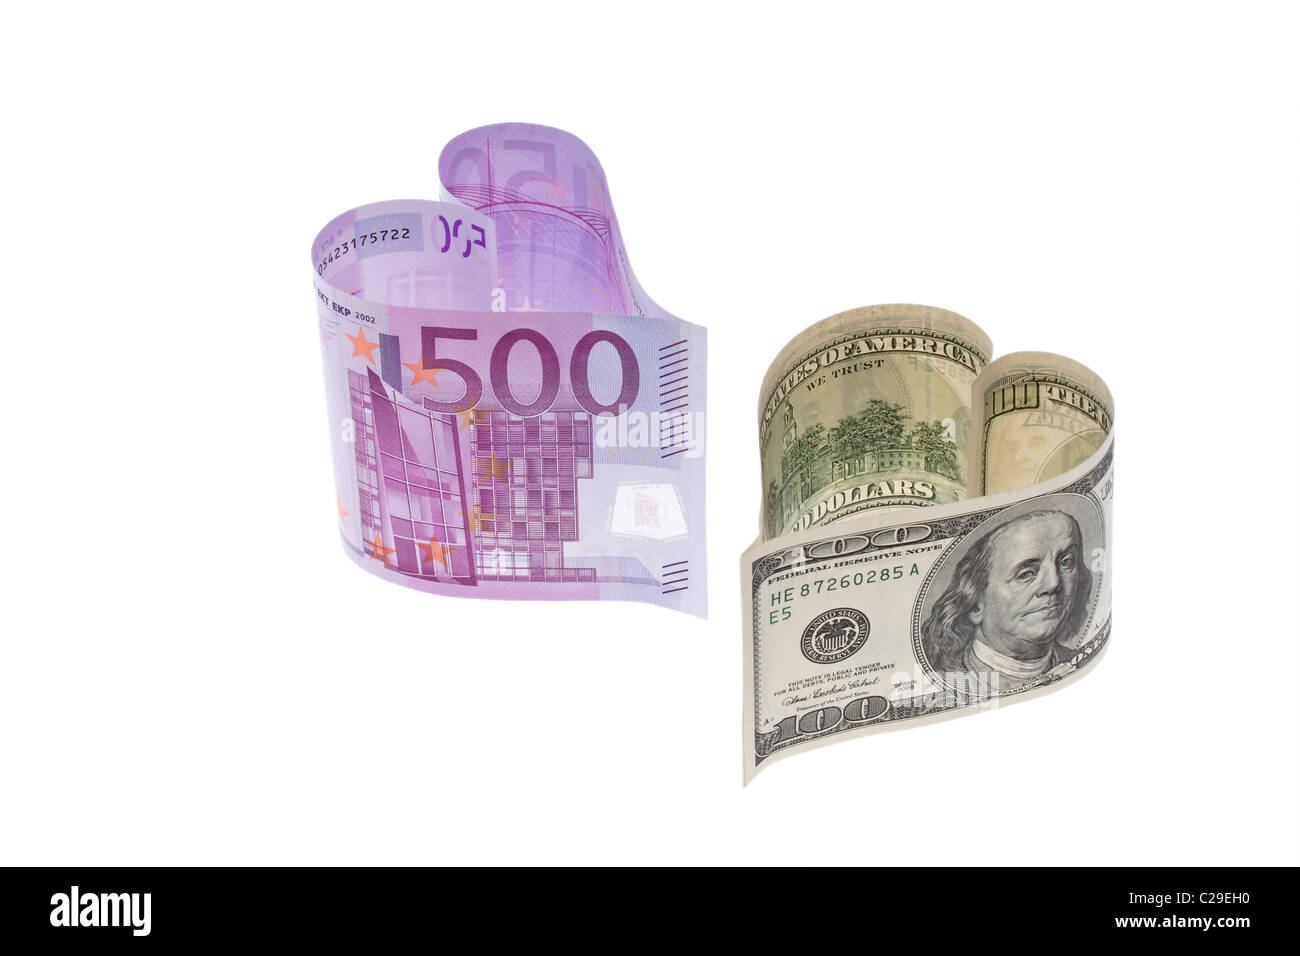 Euro banknotes and U.S. dollars. - Stock Image